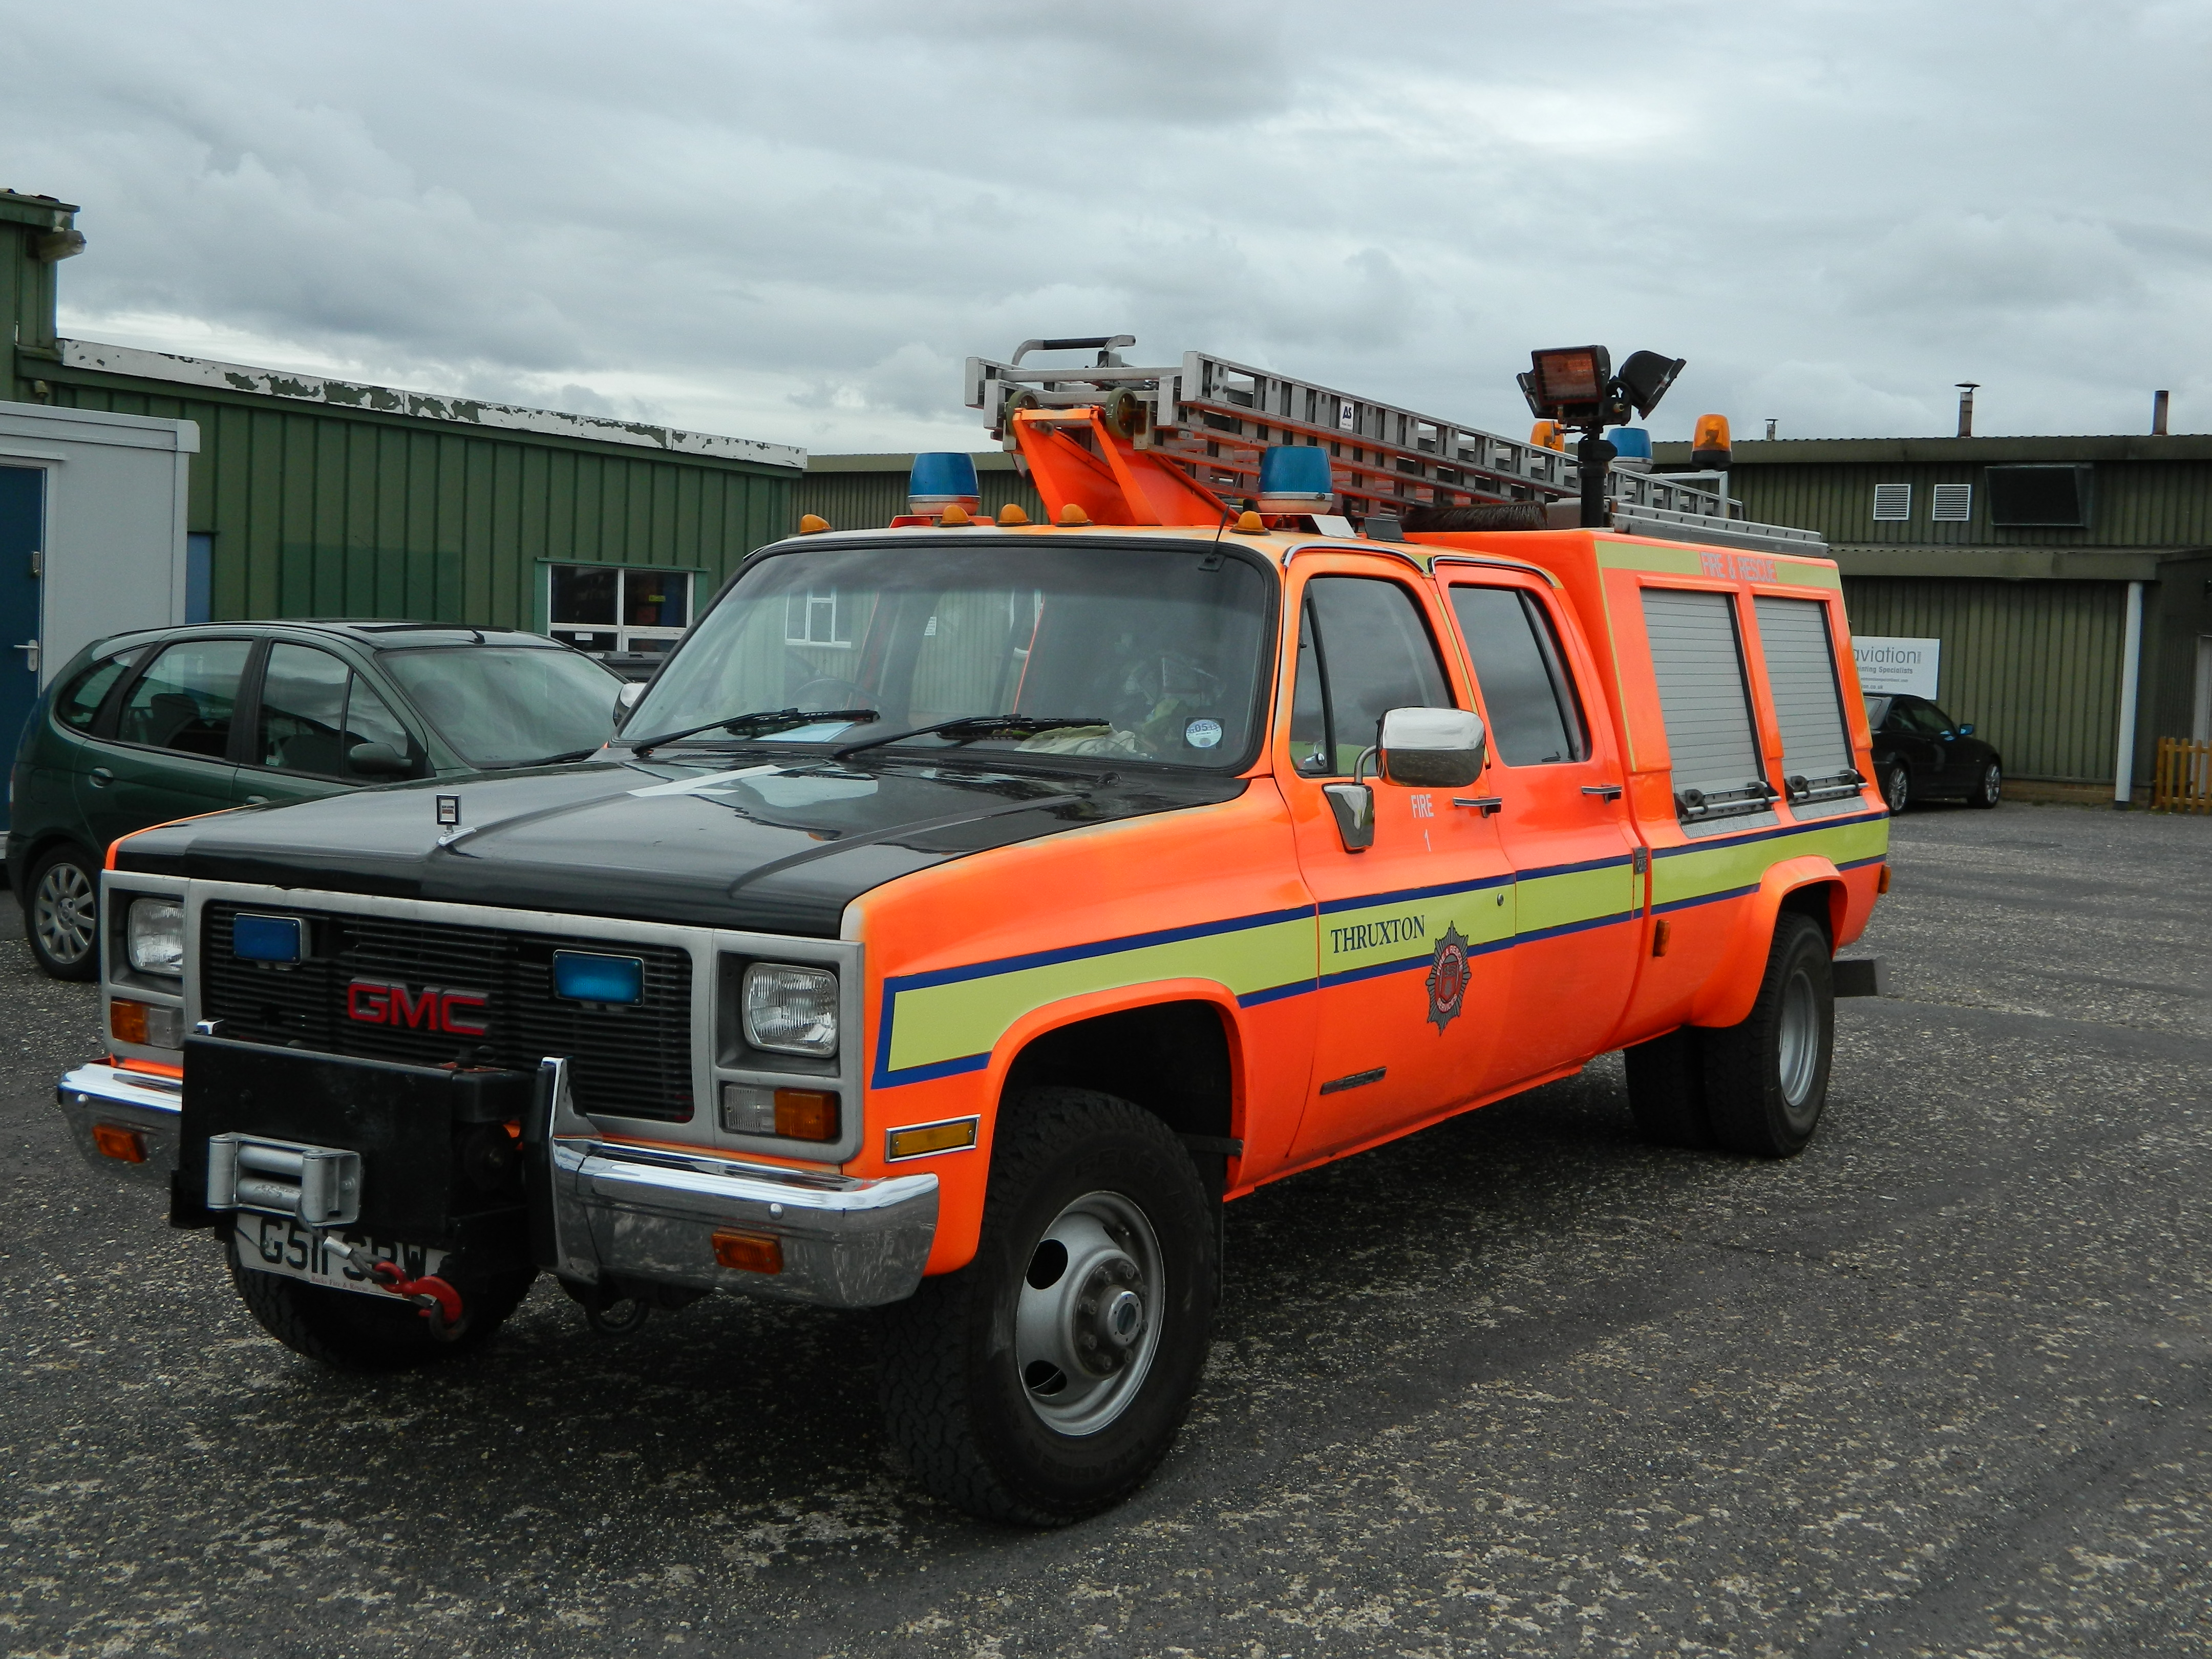 GMC Fire Truck Thruxton Airfield | Flickr - Photo Sharing!